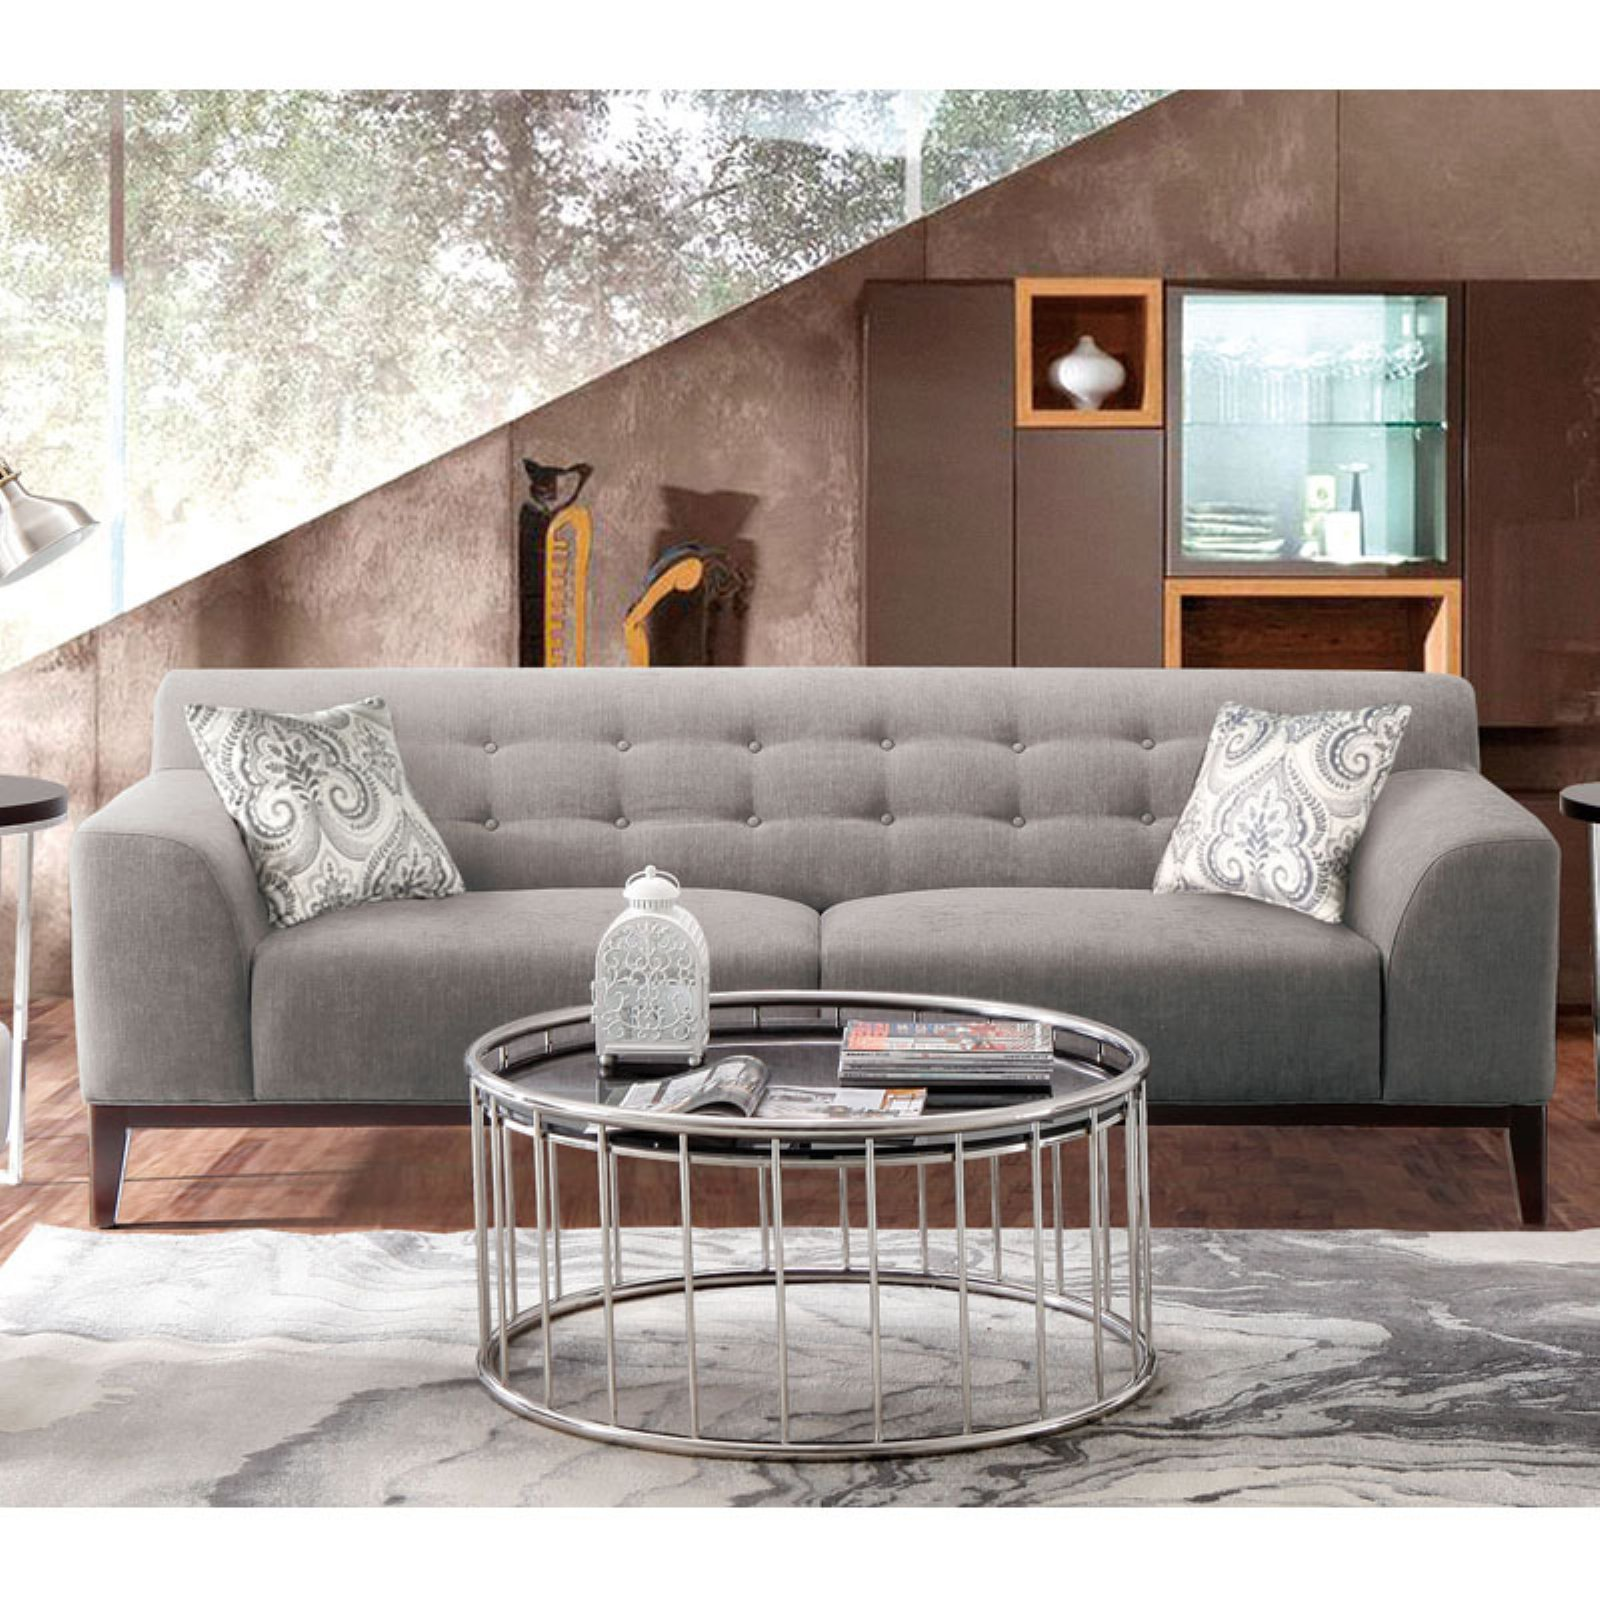 Diamond Sofa Marquee Tufted Back Sofa With Accent Pillows   Moonstone